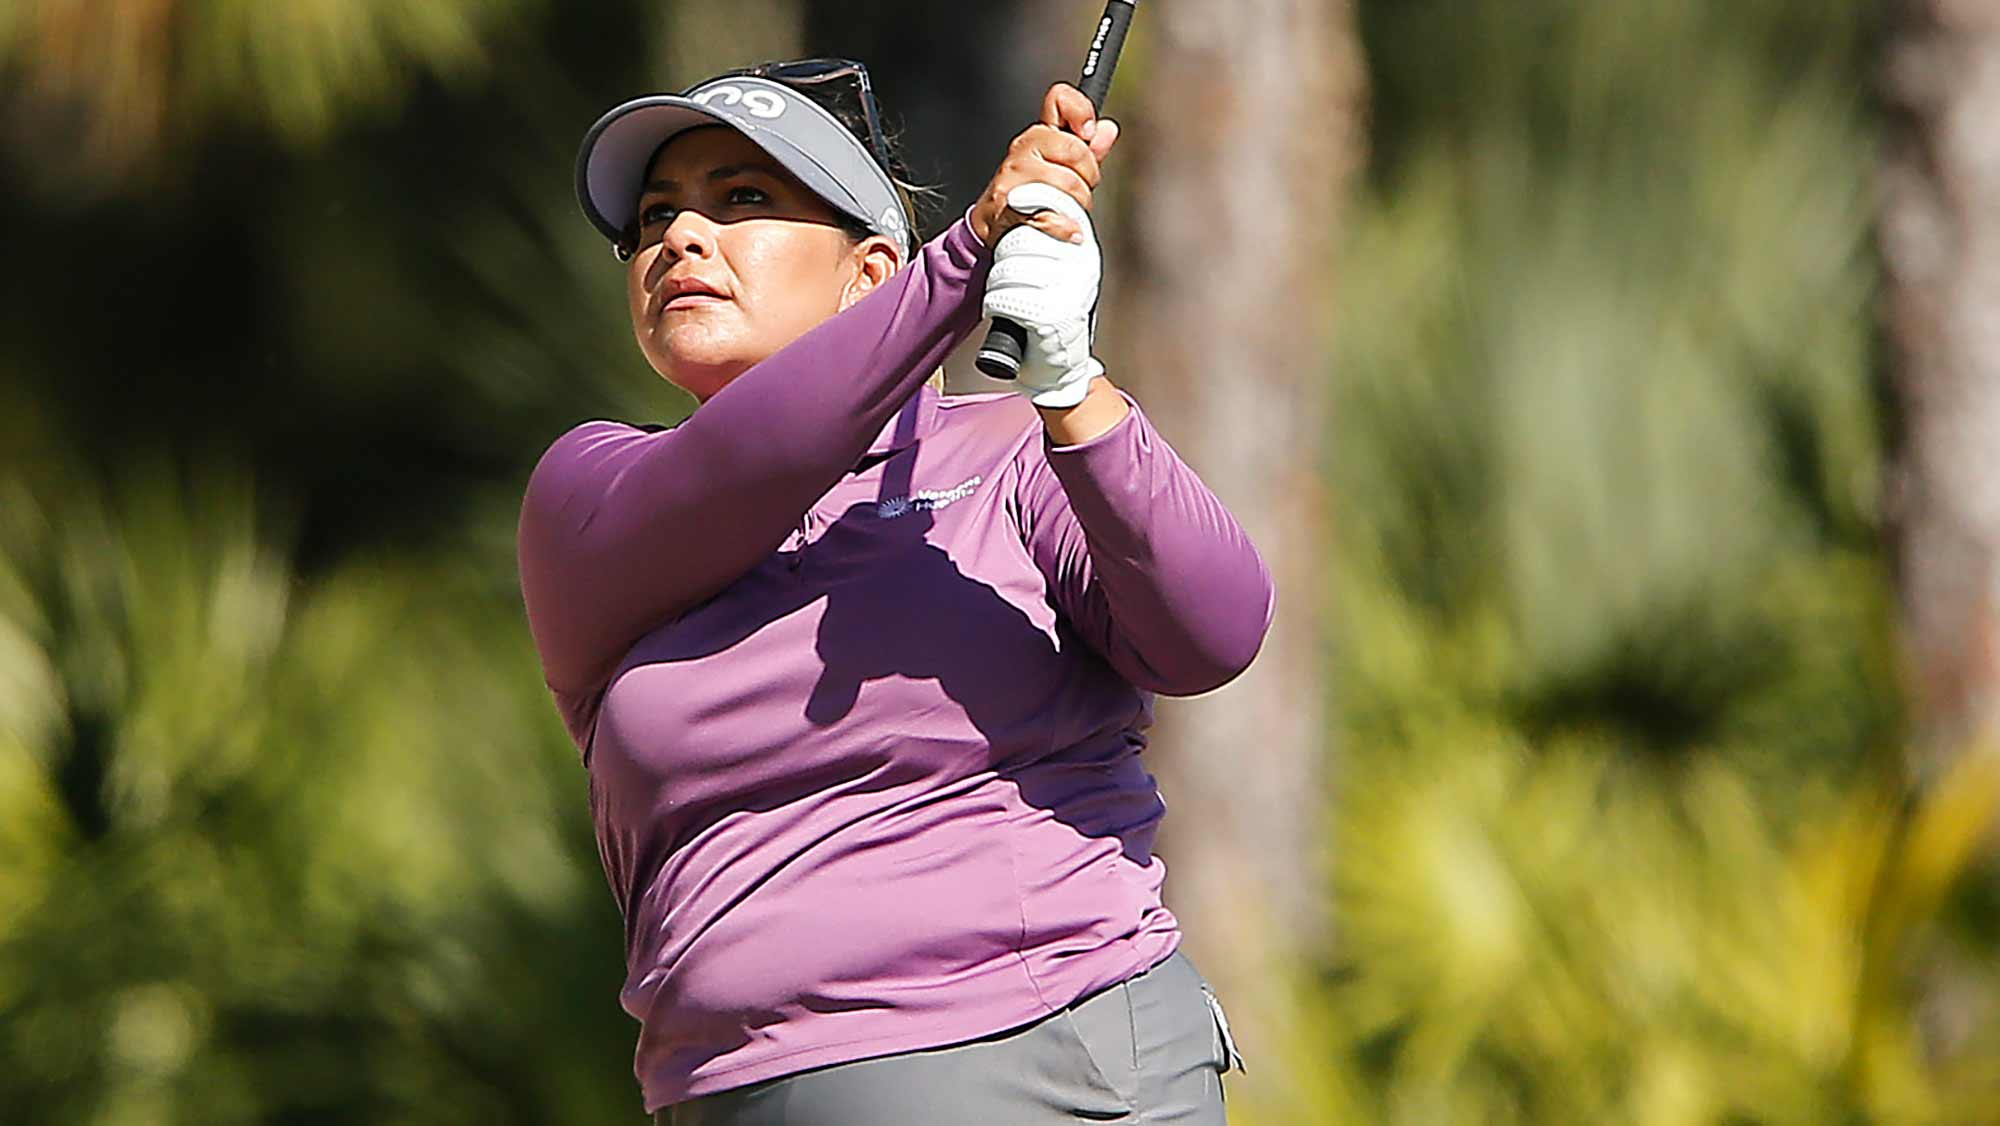 Lizette Salas of the United States plays a shot on the tenth hole during the first round of the CME Group Tour Championship at Tiburon Golf Club on November 21, 2019 in Naples, Florida